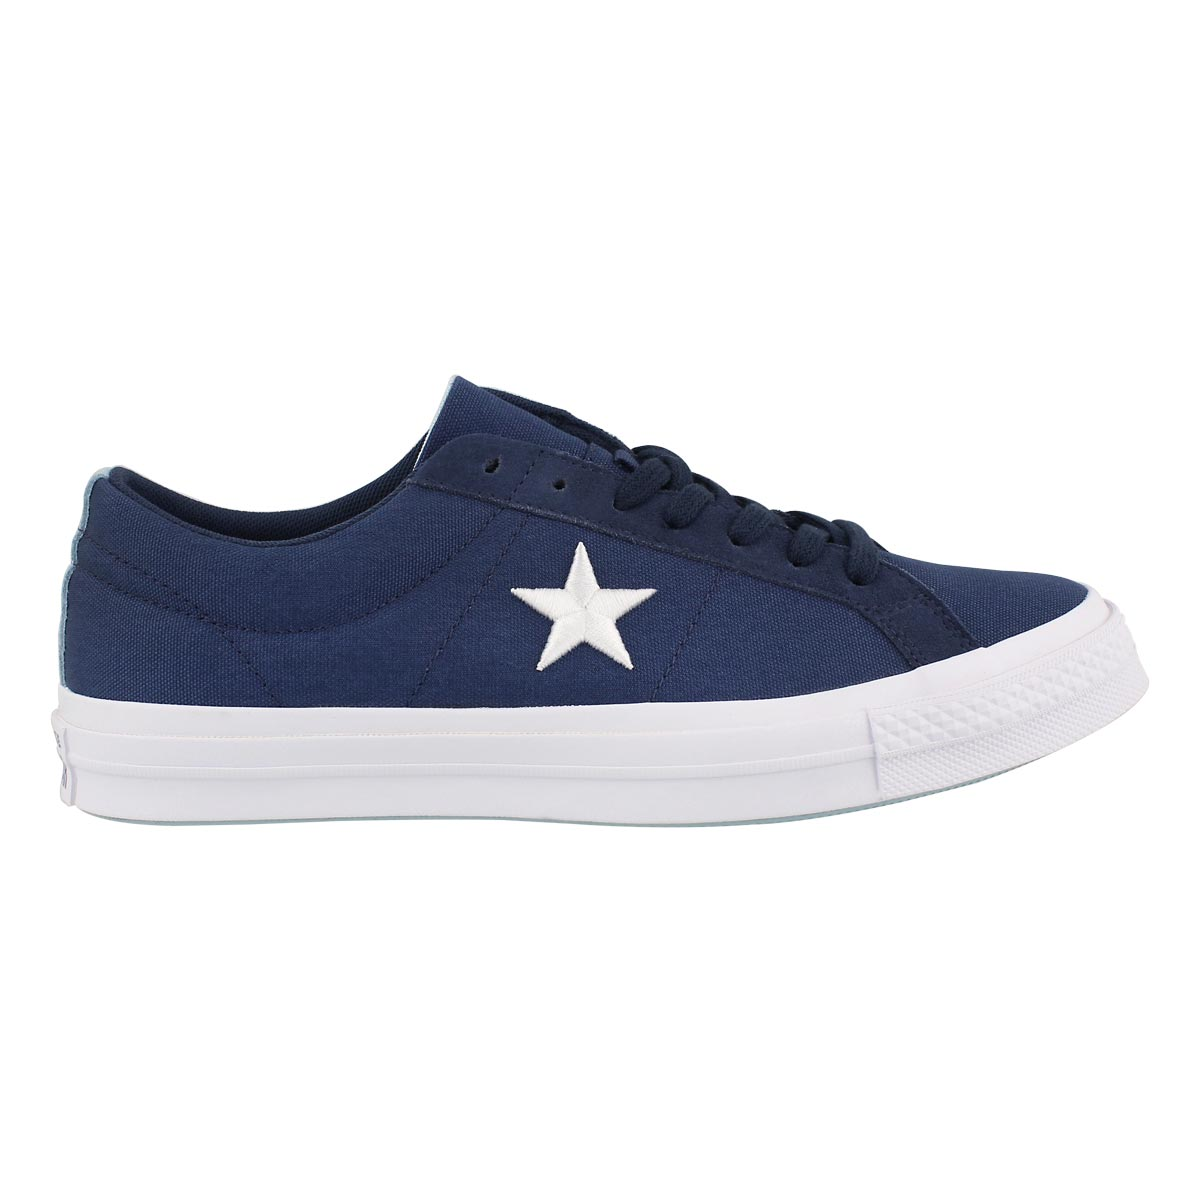 Mns One Star nvy/wht fashion sneaker